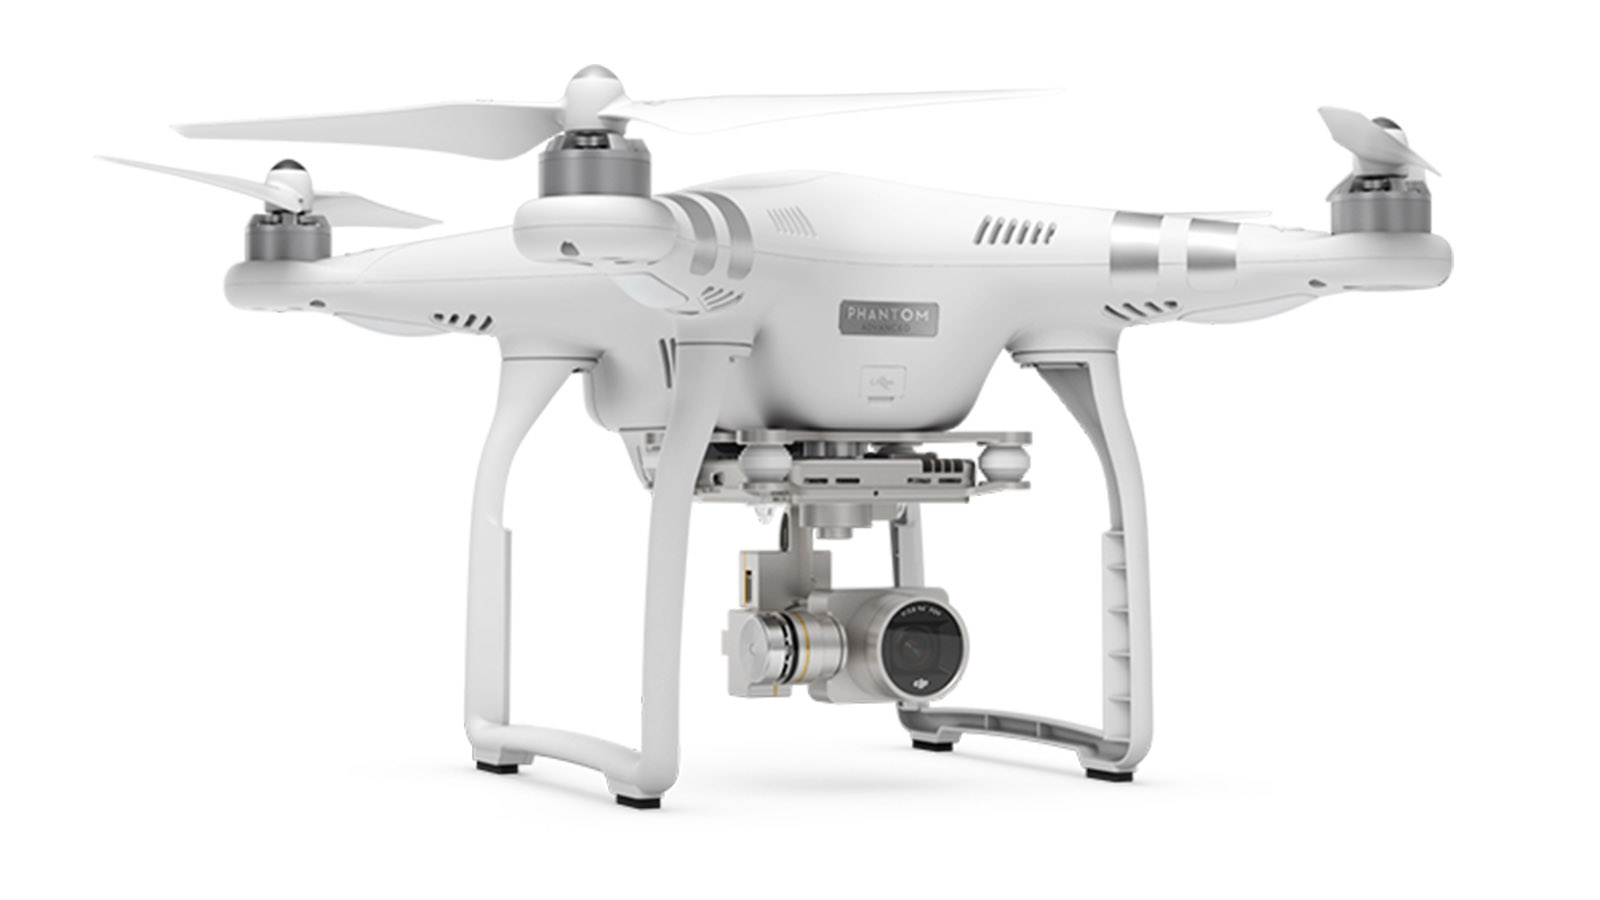 best affordable drones with display with Dji Announces Phantom 3 Drone on 3 as well Dell Xps 13 2015 Review together with Apple Imac With 4k Retina Display 21 5 Inch 2015 as well Best Gopro Action Camera Alternatives besides Parrot Sequoia.